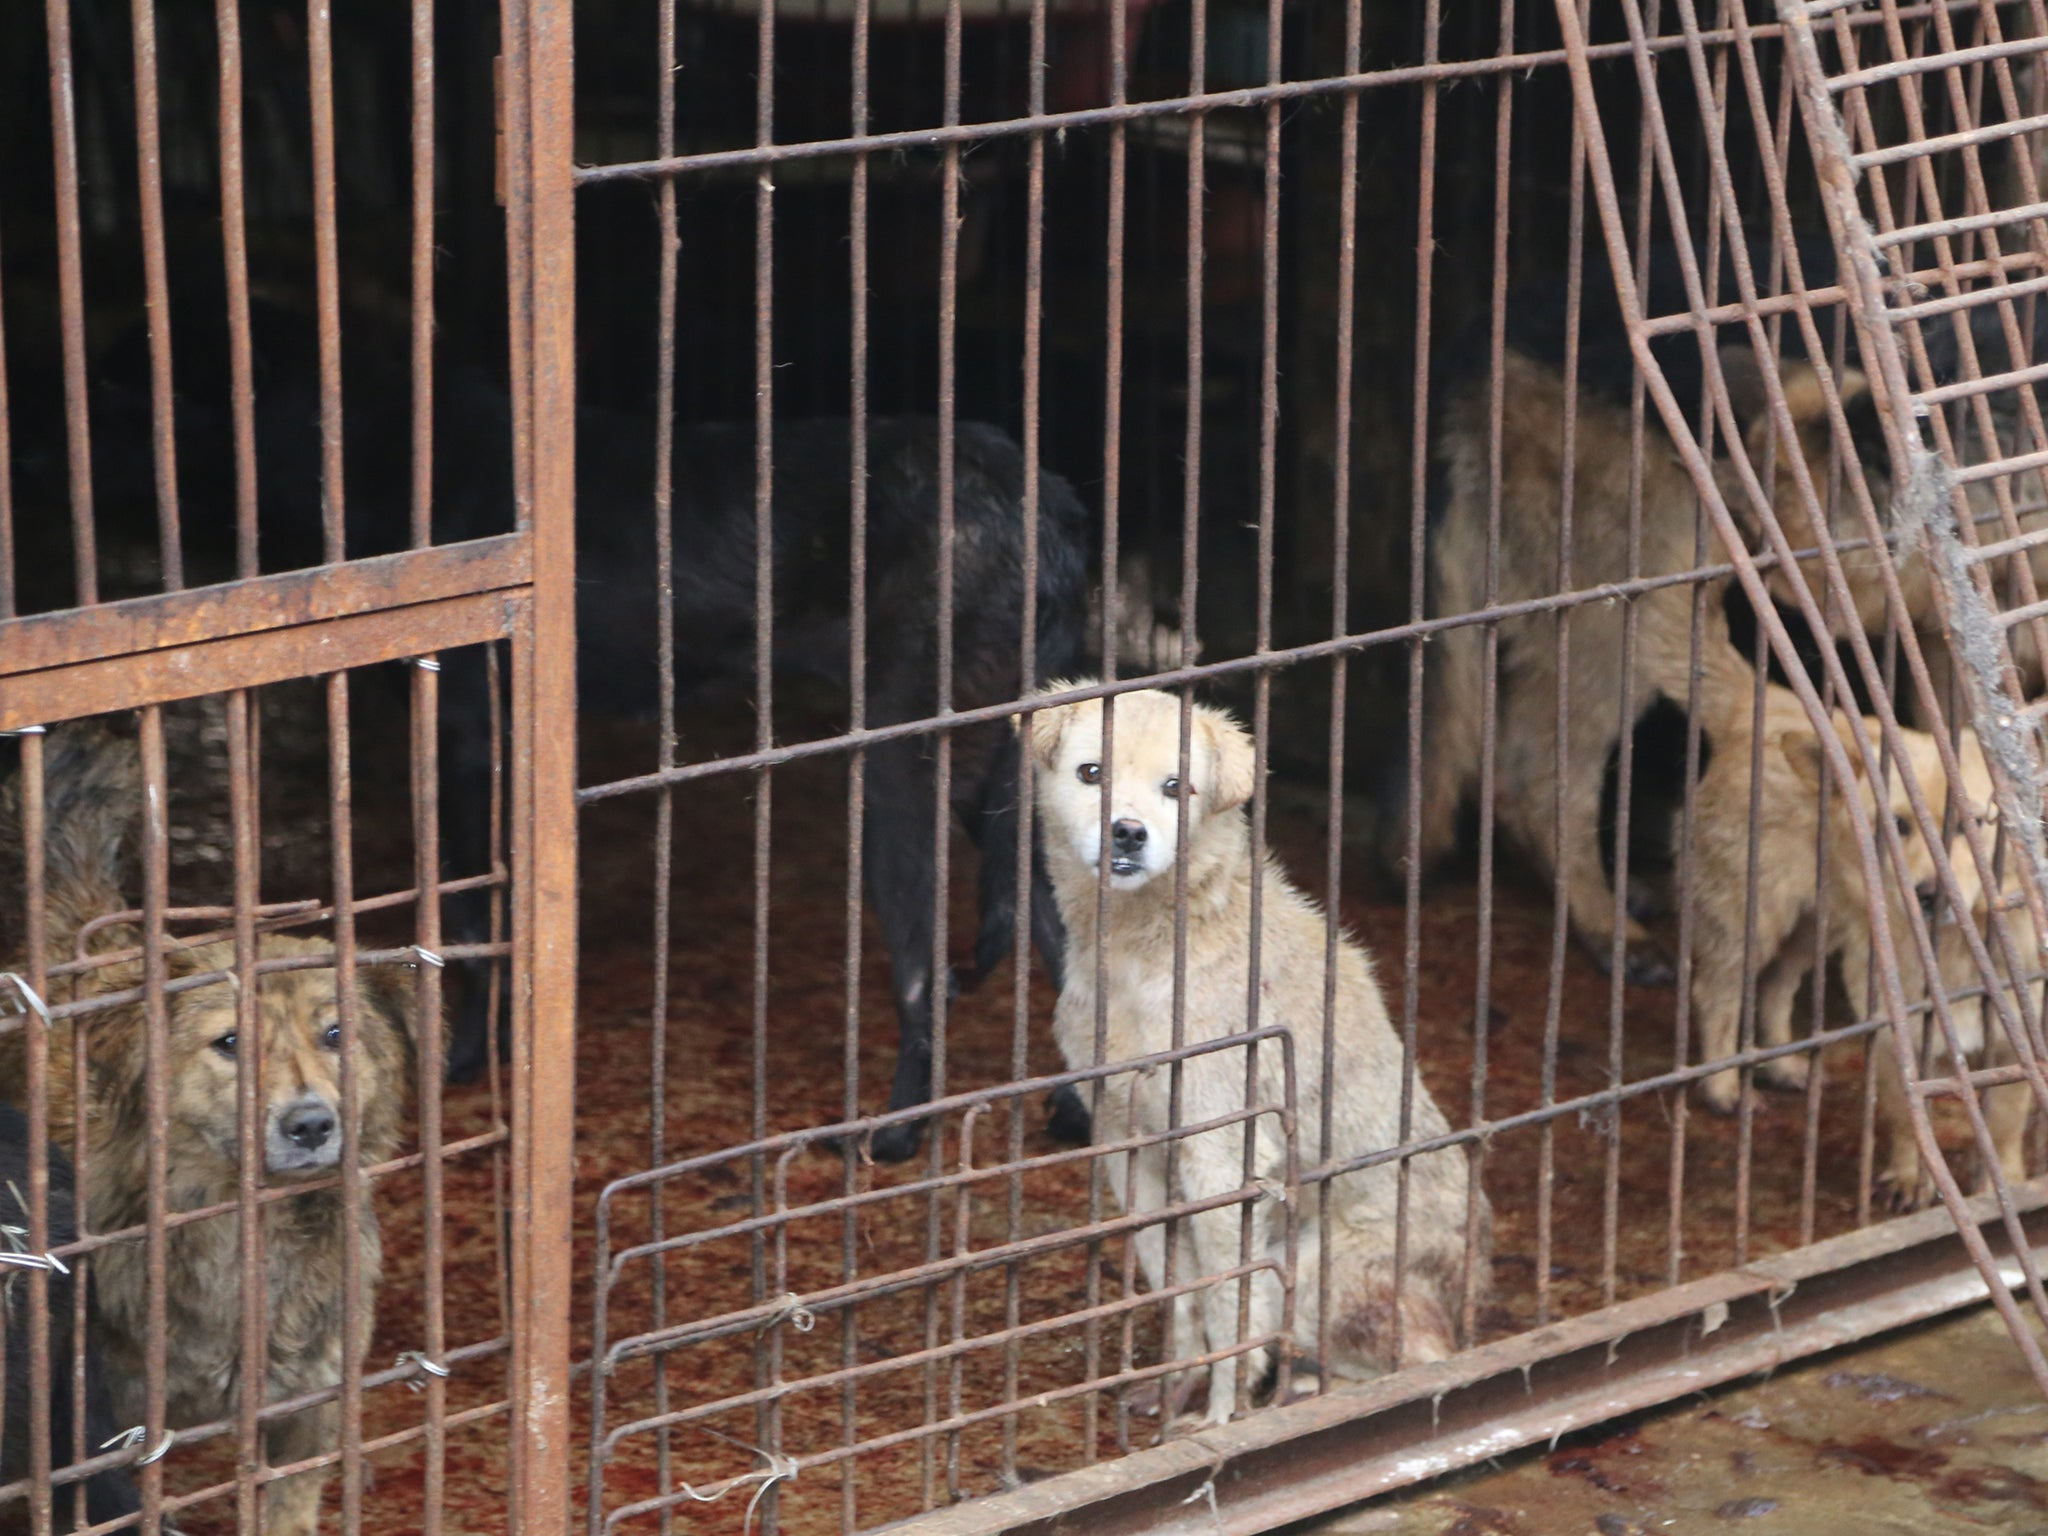 Dogs at slaughterhouse, Yulin